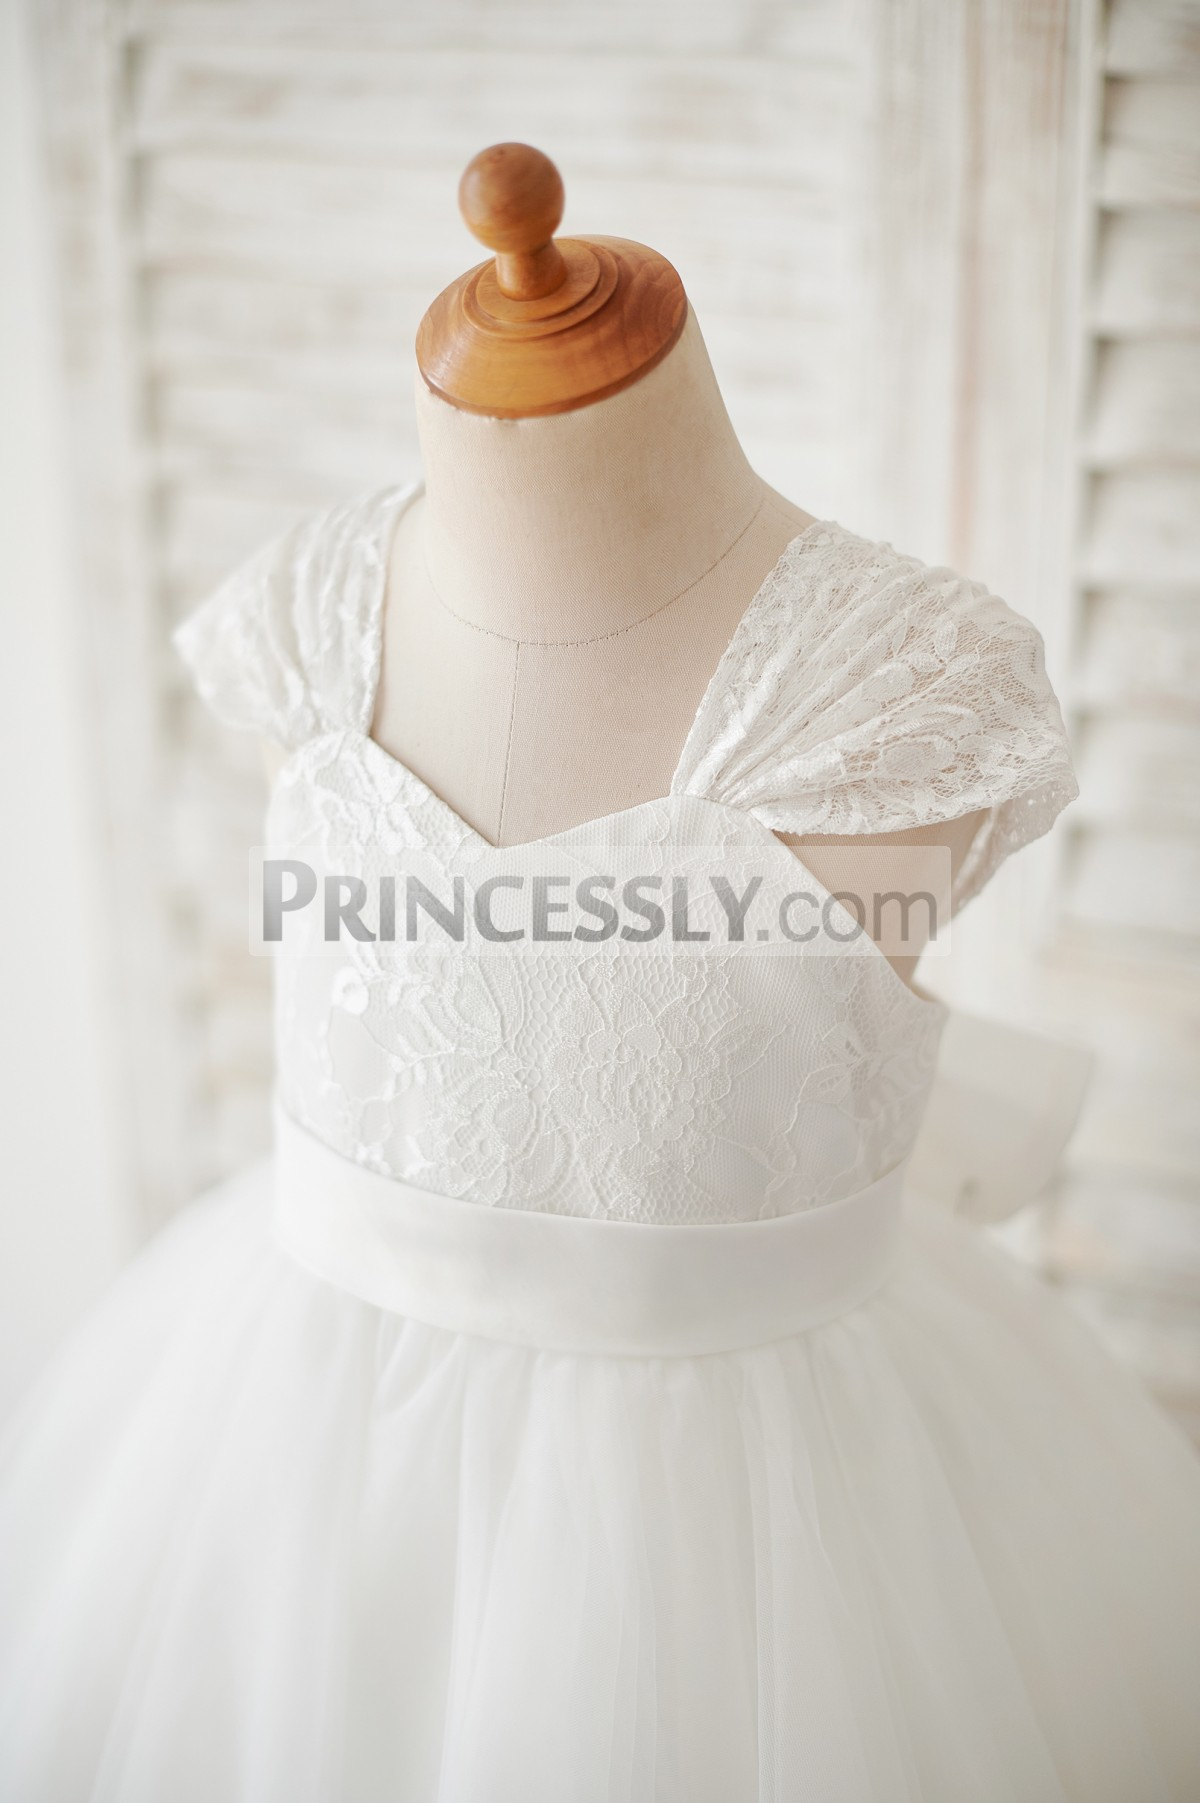 Lace cap sleeves, sweetheart neckline & fixed waistband on bodice